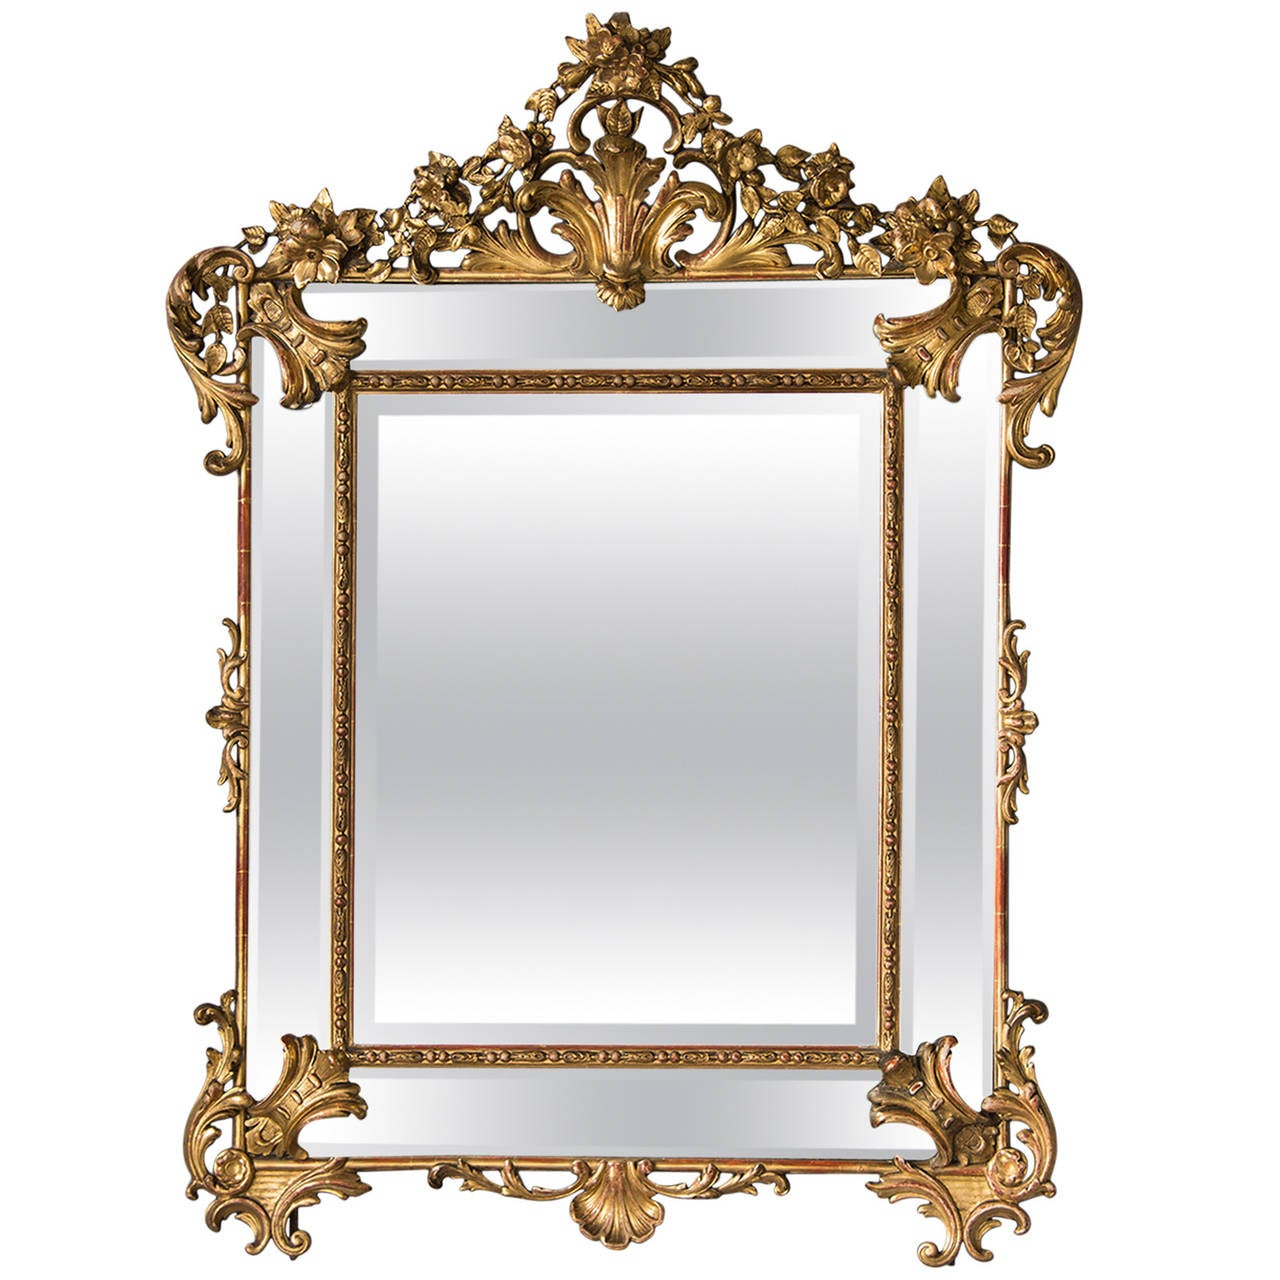 Bold Antique French Régence Style Pareclose Gold Leaf Mirror, circa 1890 1